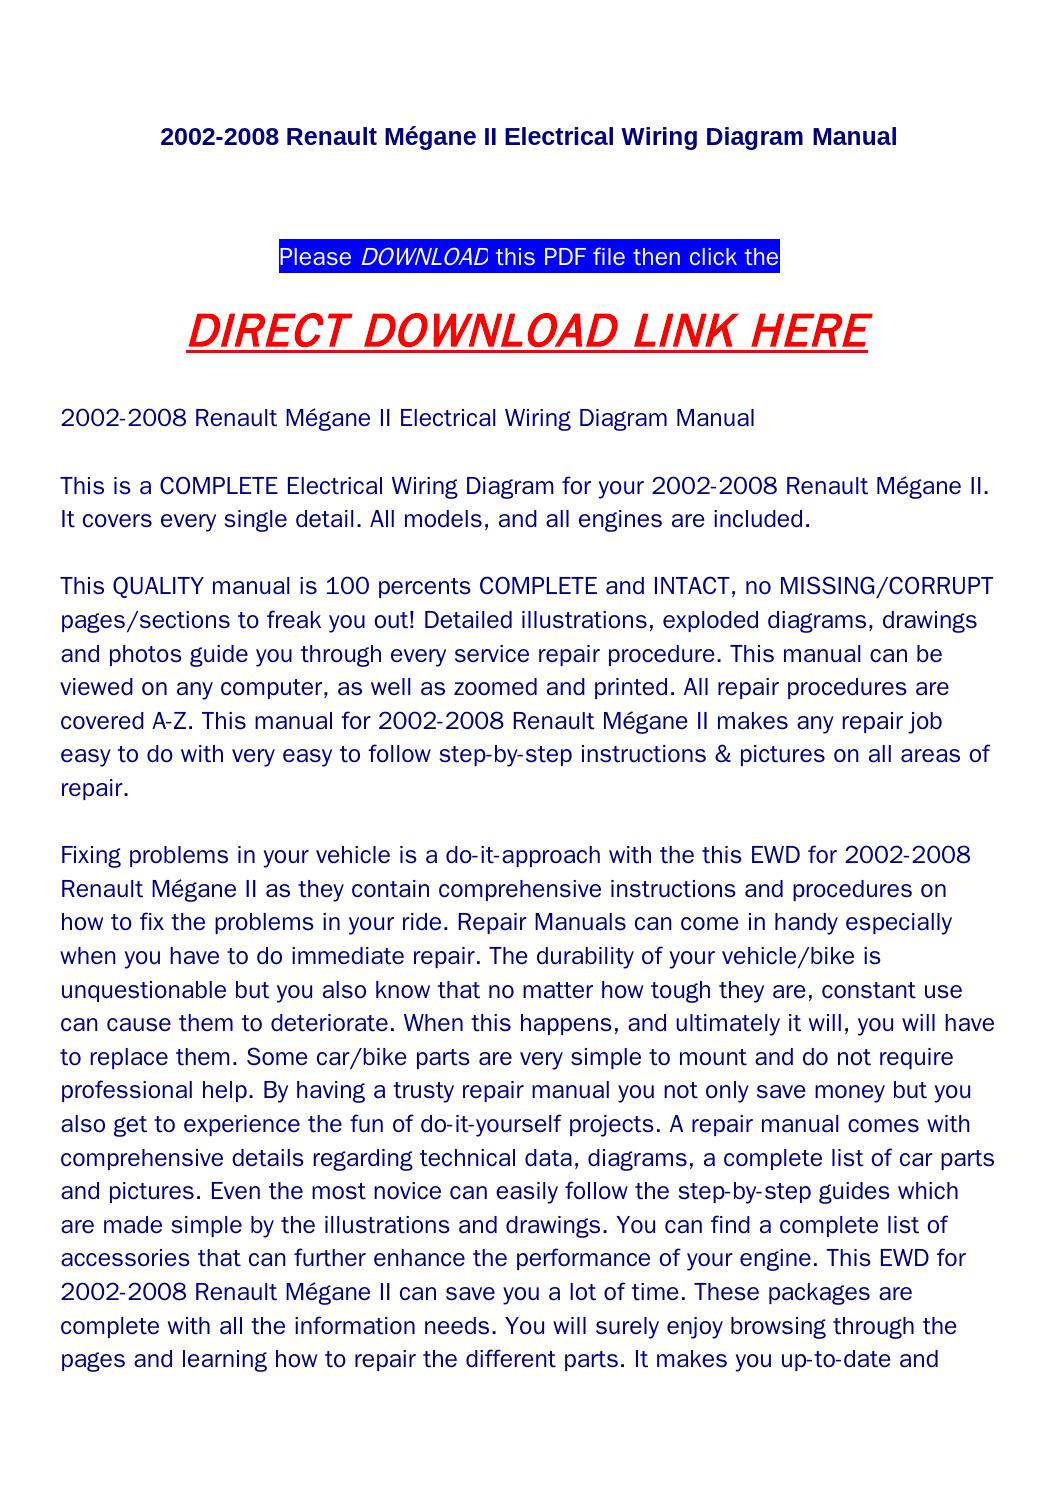 hight resolution of 2002 2008 renault m gane ii electrical wiring diagram manual by huou issuu